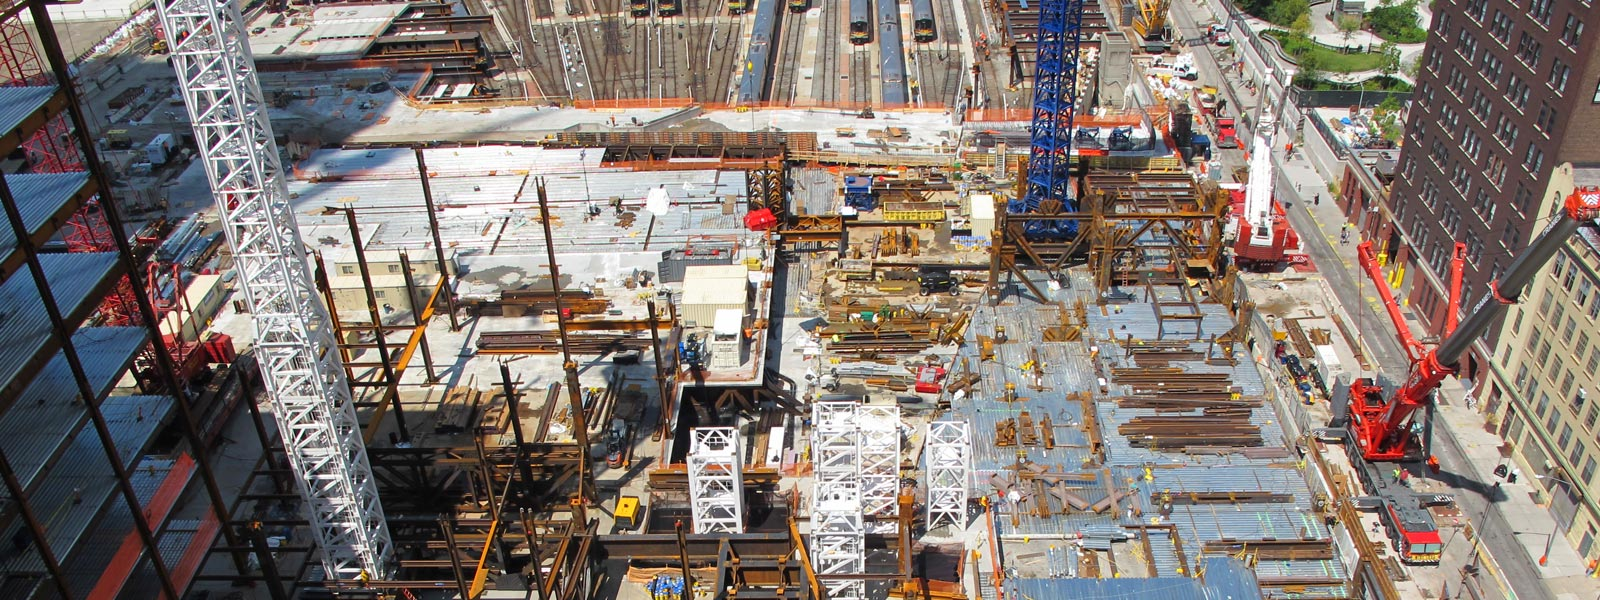 Staffing and services construction industry Hudson Yards project